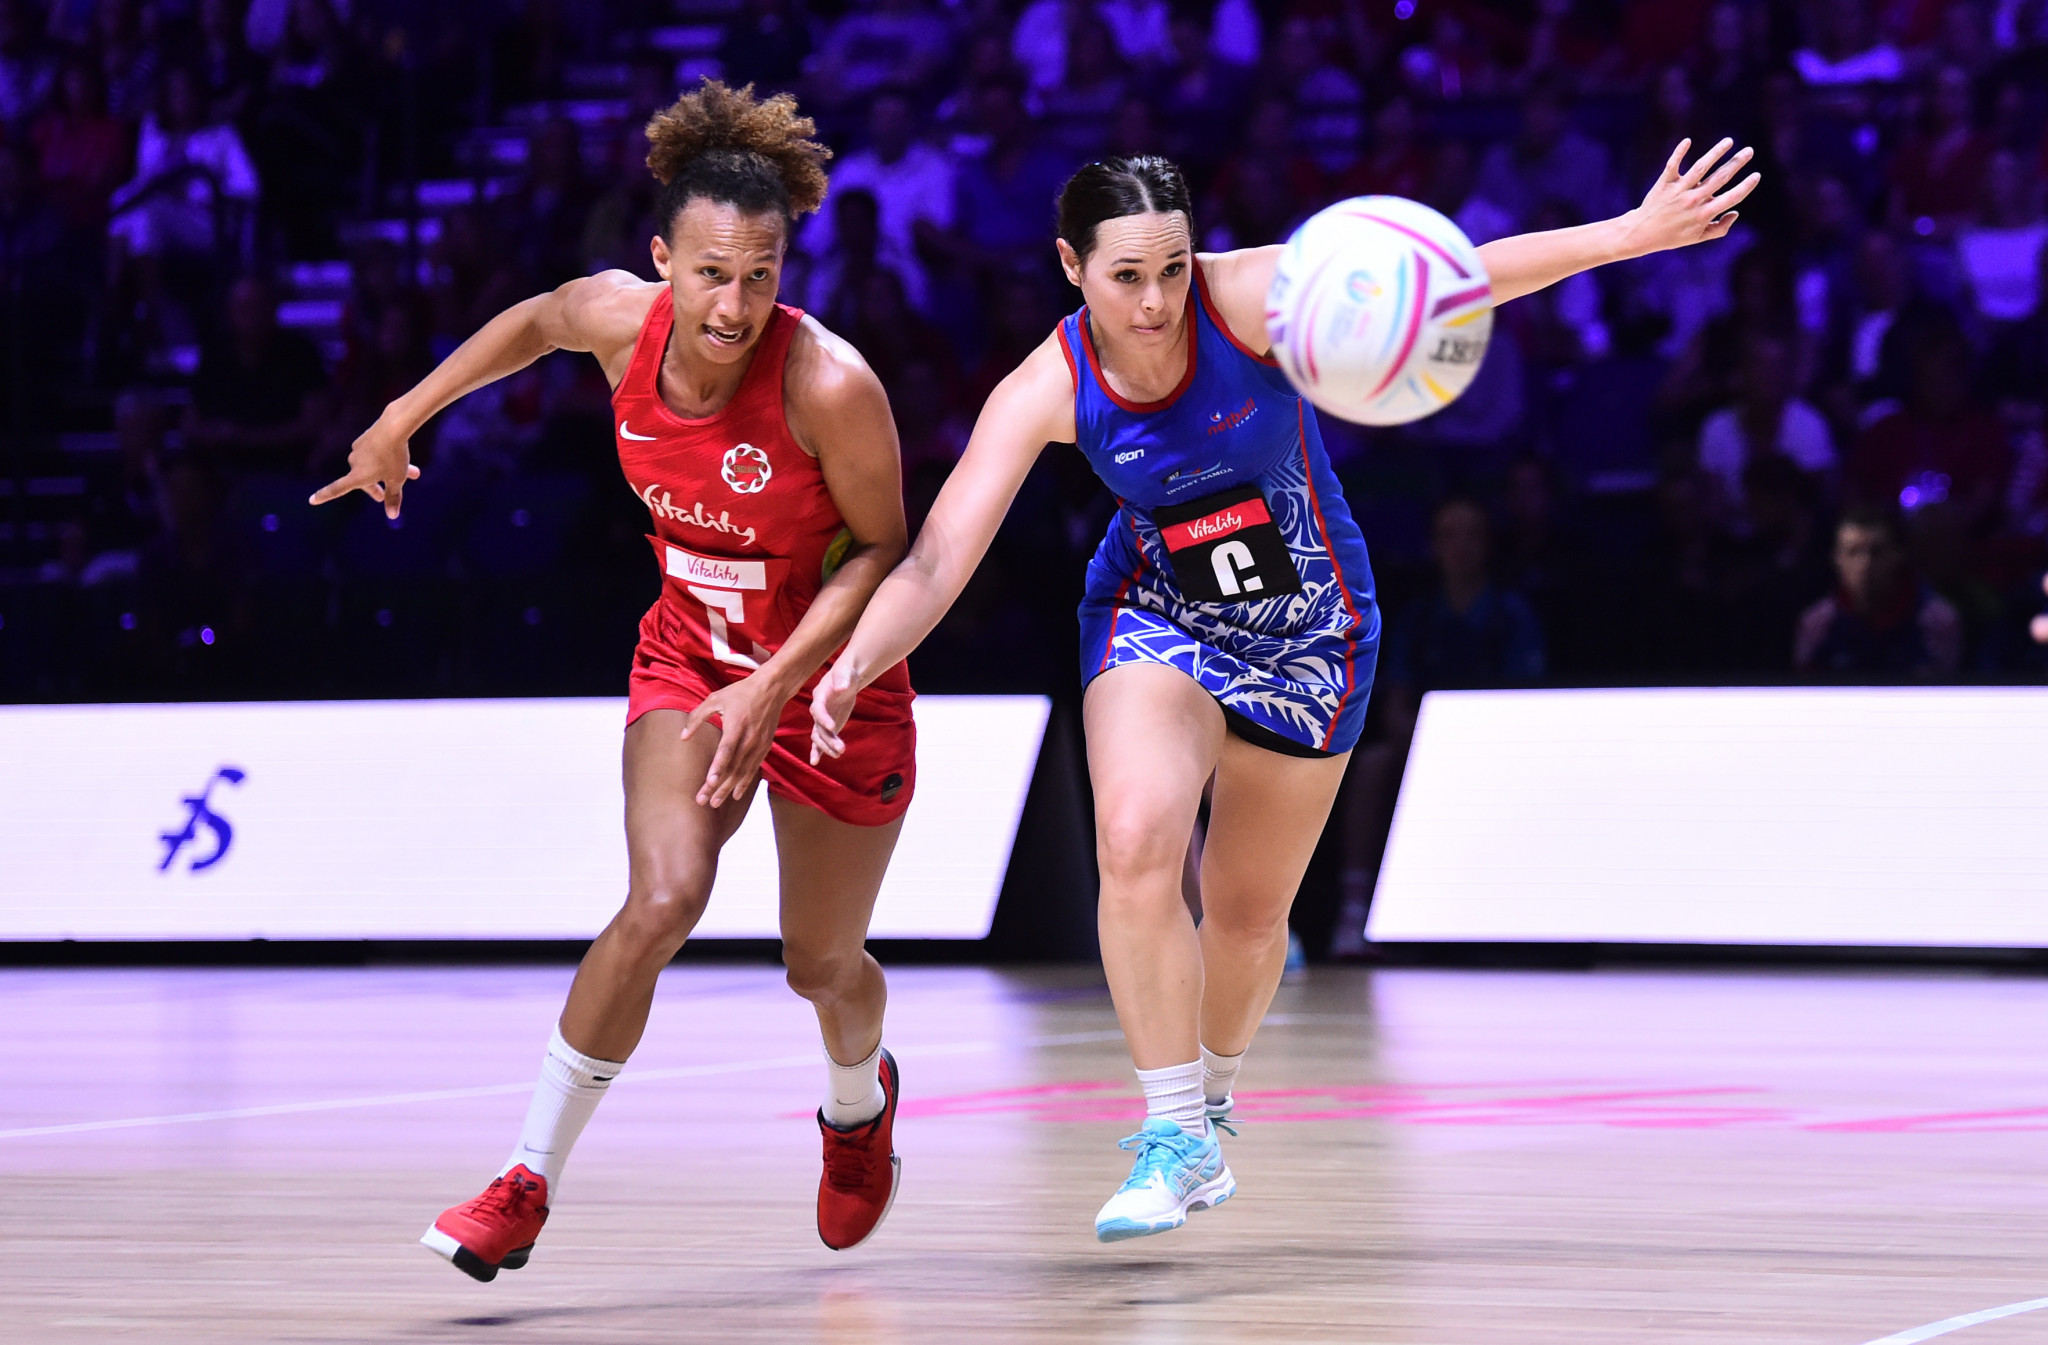 England thrashed Samoa 90-24 to finish top of Group D at the Netball World Cup in Liverpool ©Getty Images